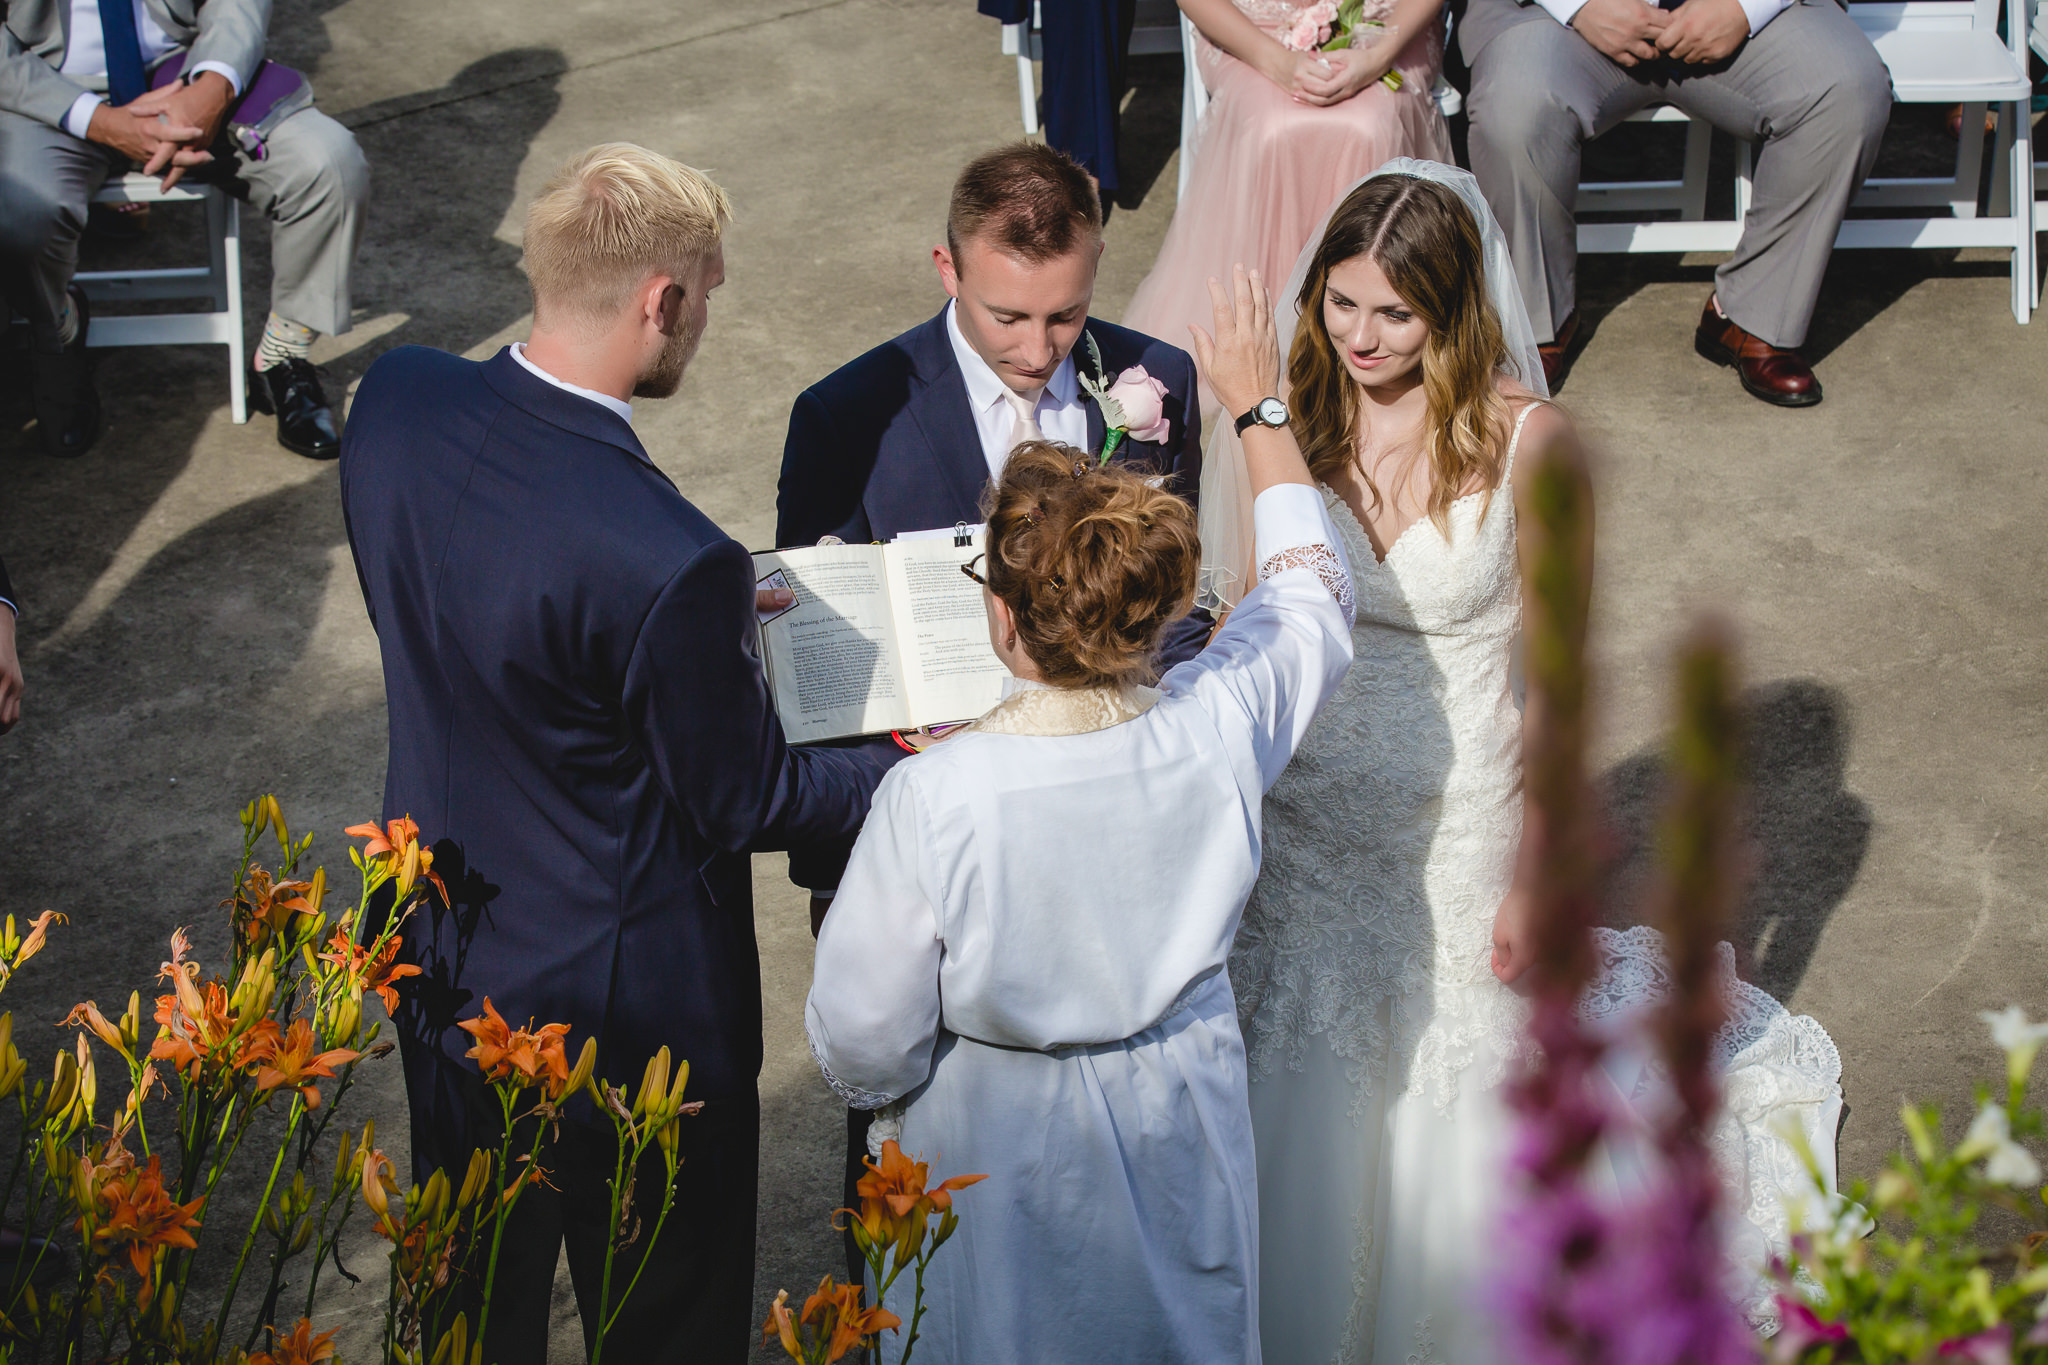 Officiant blesses the newlyweds at a Hidden Valley Resort wedding